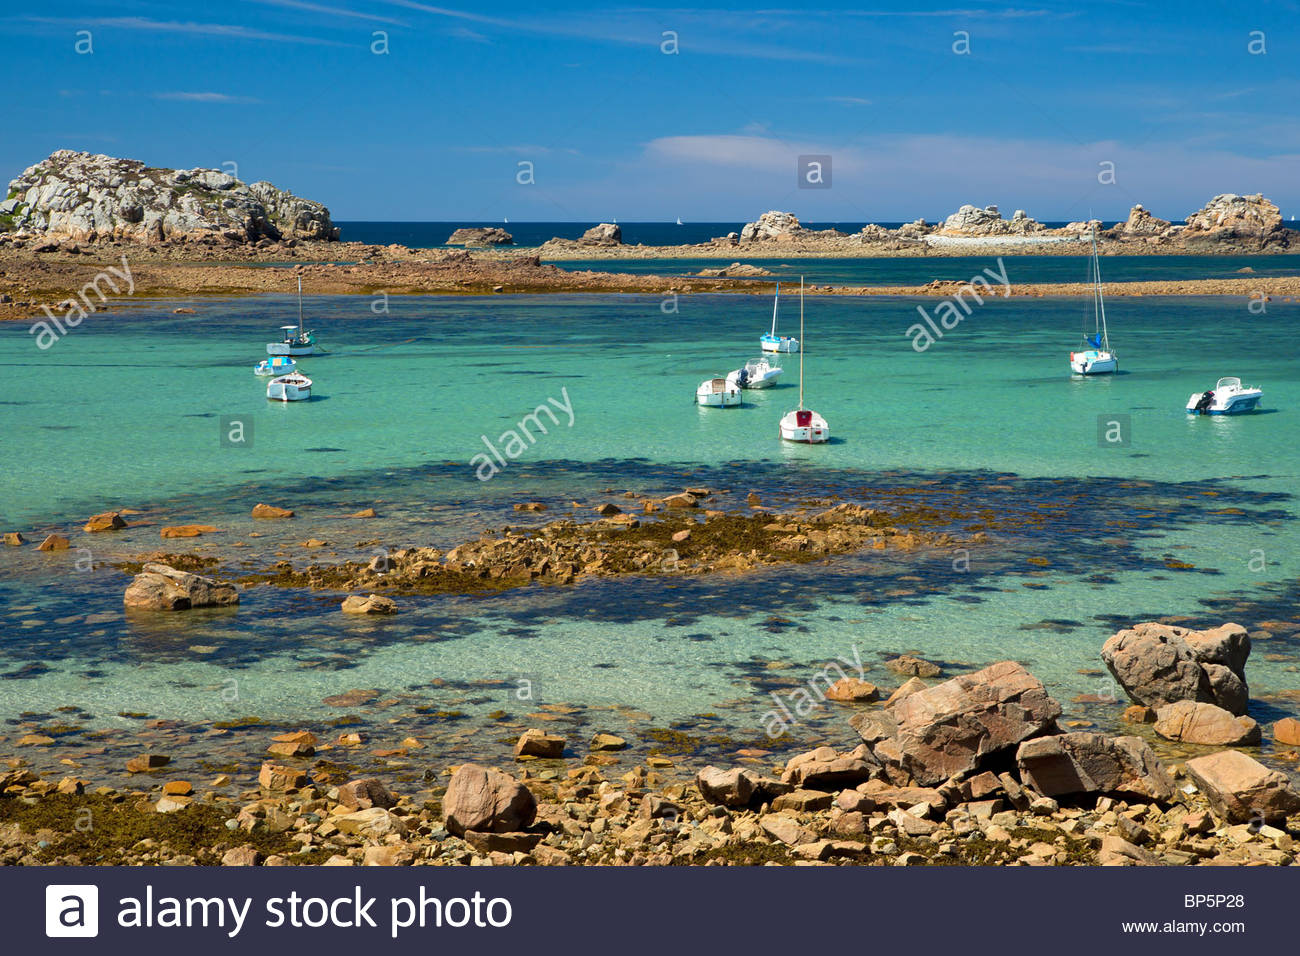 Boats and clear water between pink granite rocks at Plougrescant (near Perros Guirec) in Brittany - France - Stock Image